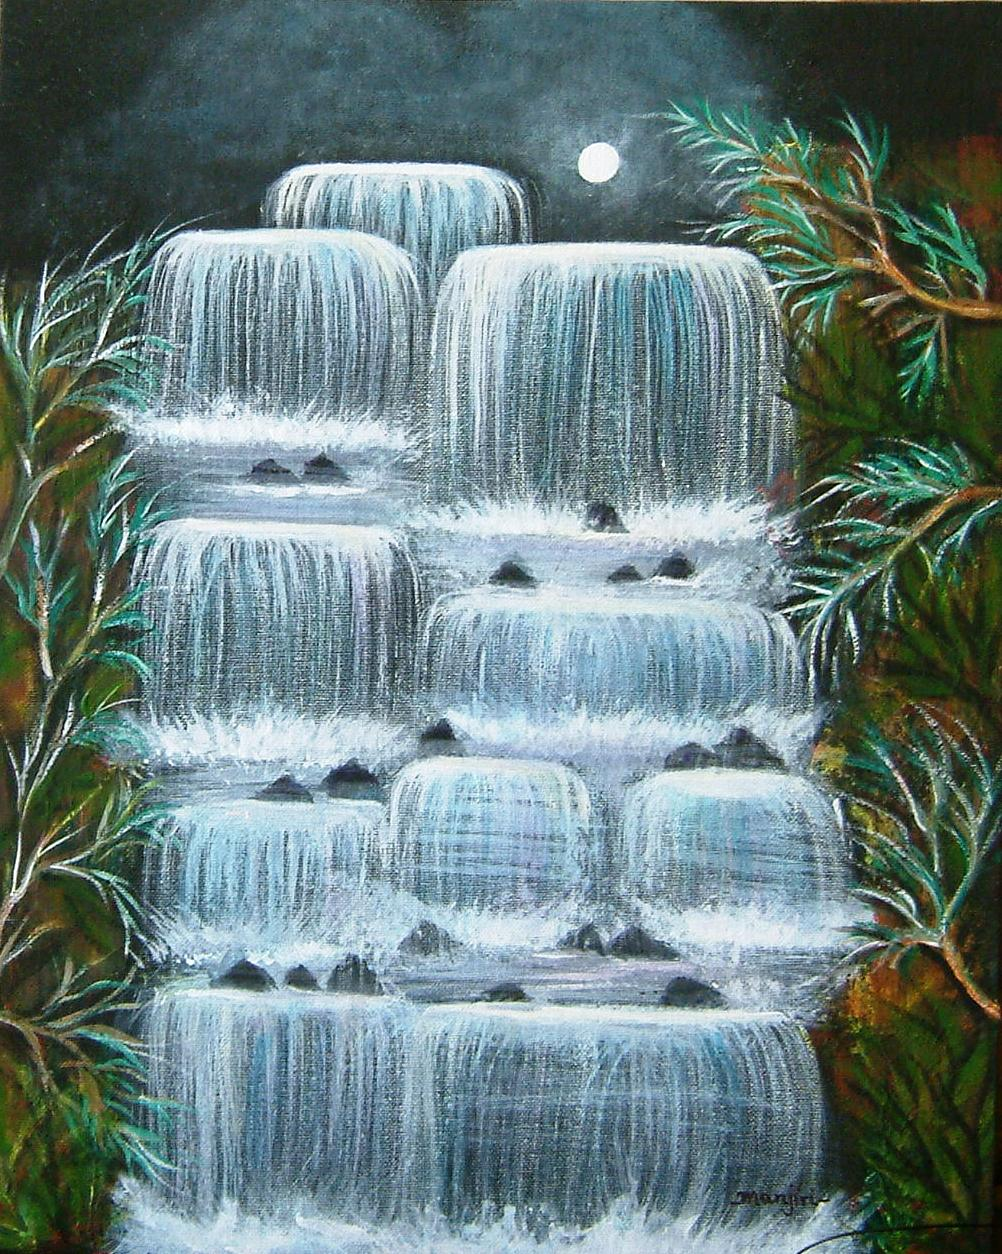 MOON LIT FALLS LANDSCAPE ON CANVAS BOARD